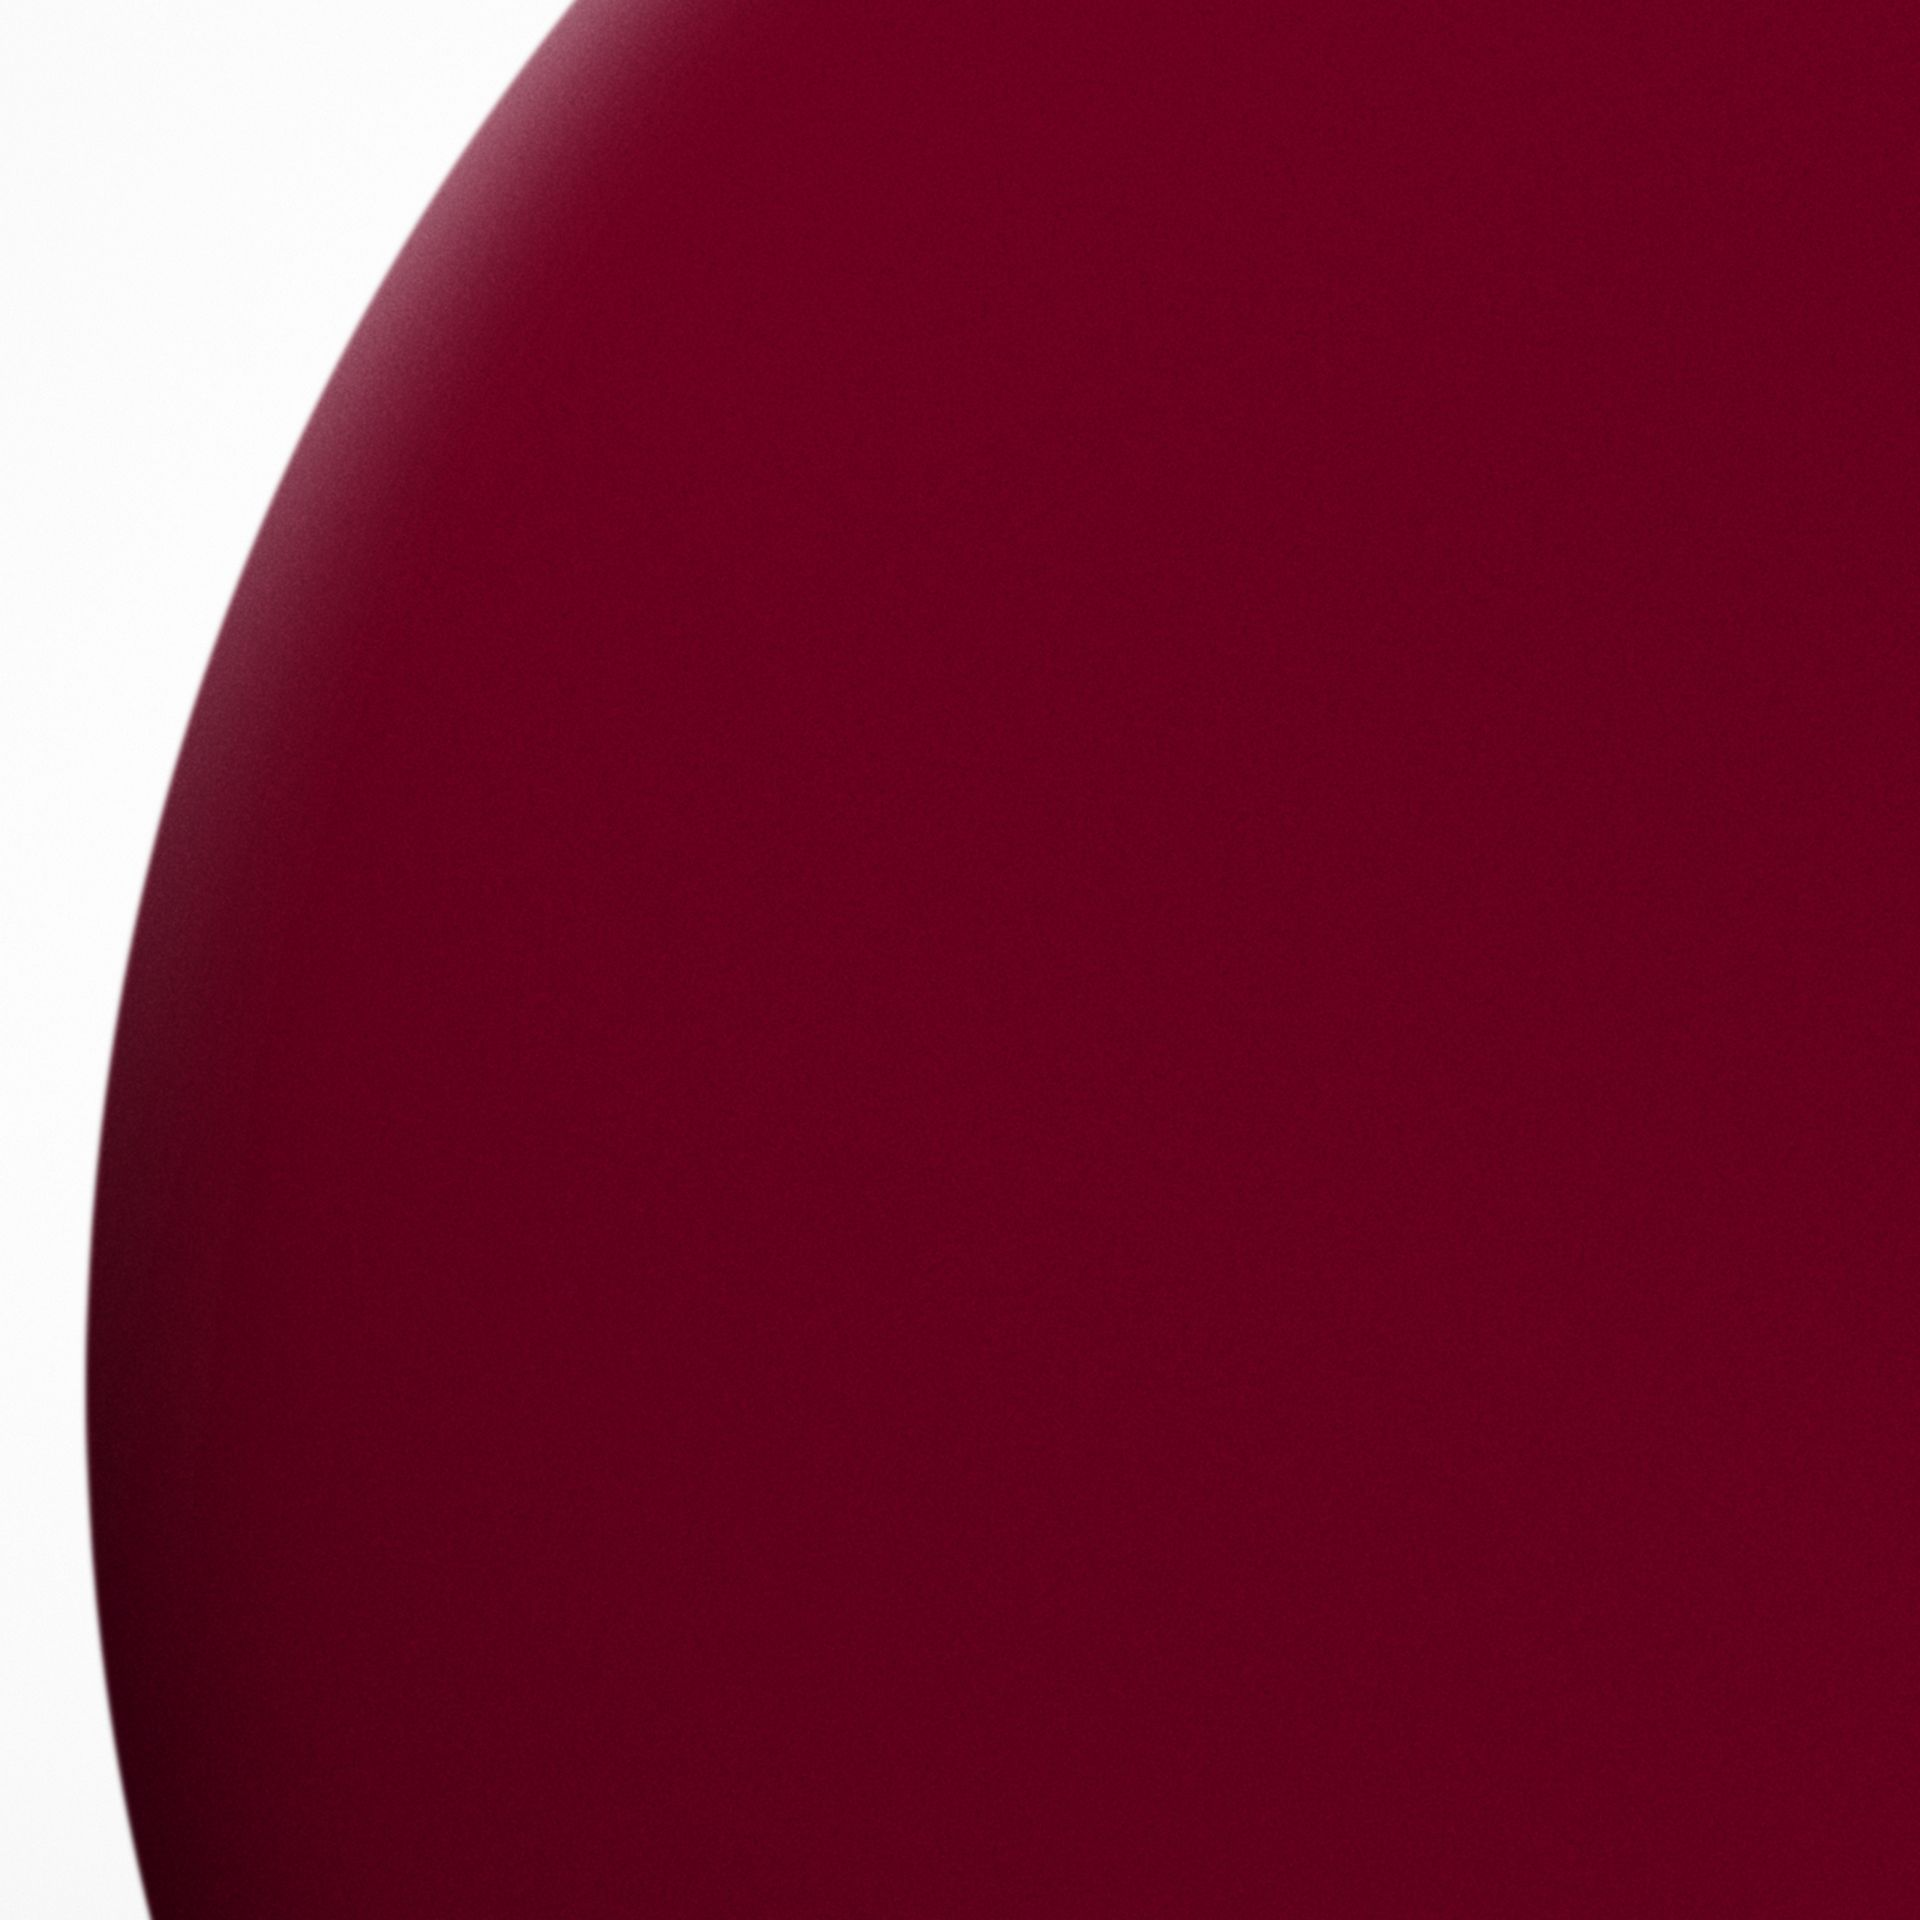 Nail Polish - Oxblood No.303 - gallery image 2